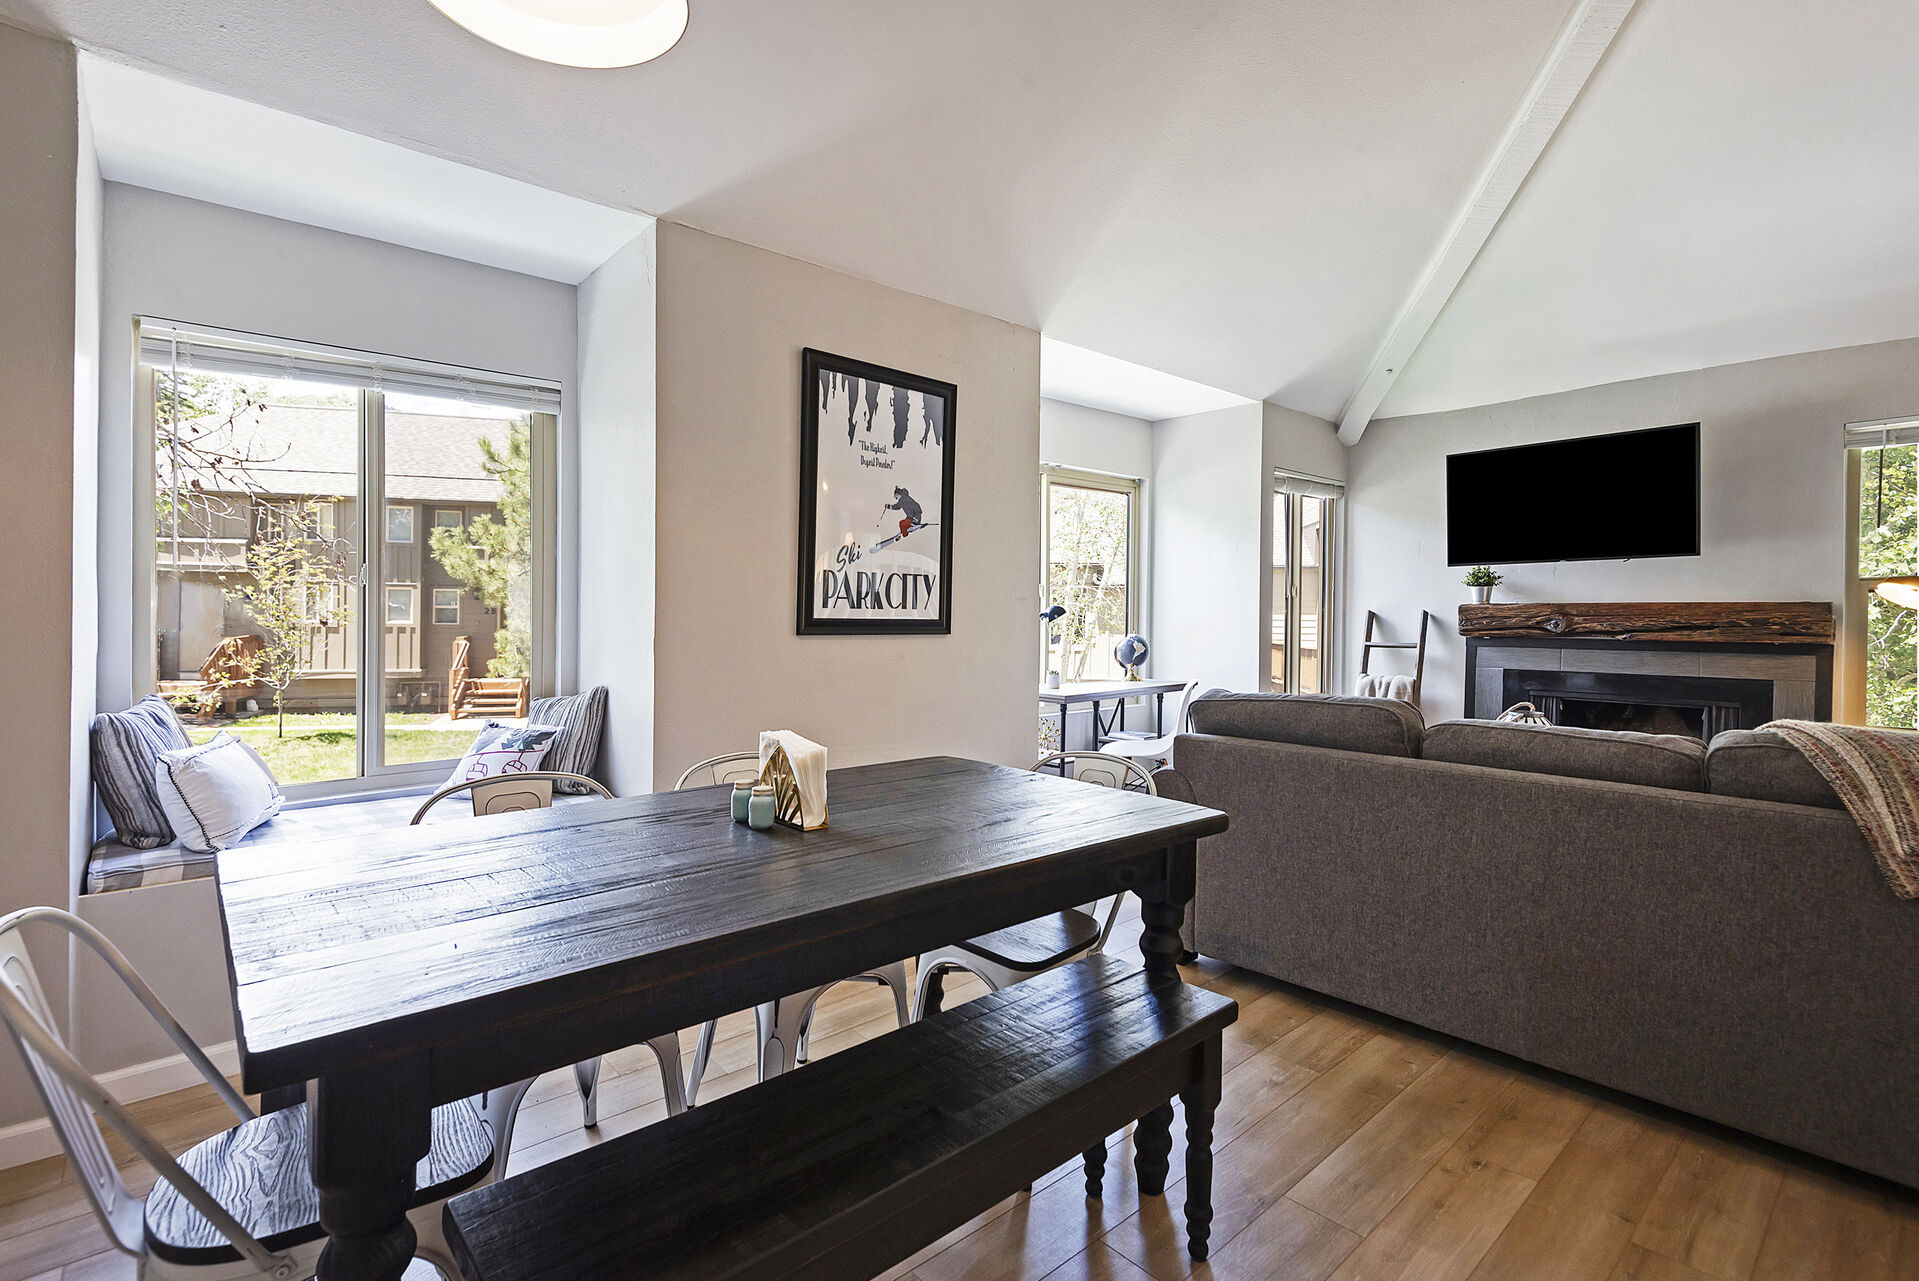 Dining Area with Seating for up to Seven and a Bench Window Seat with Linen Storage